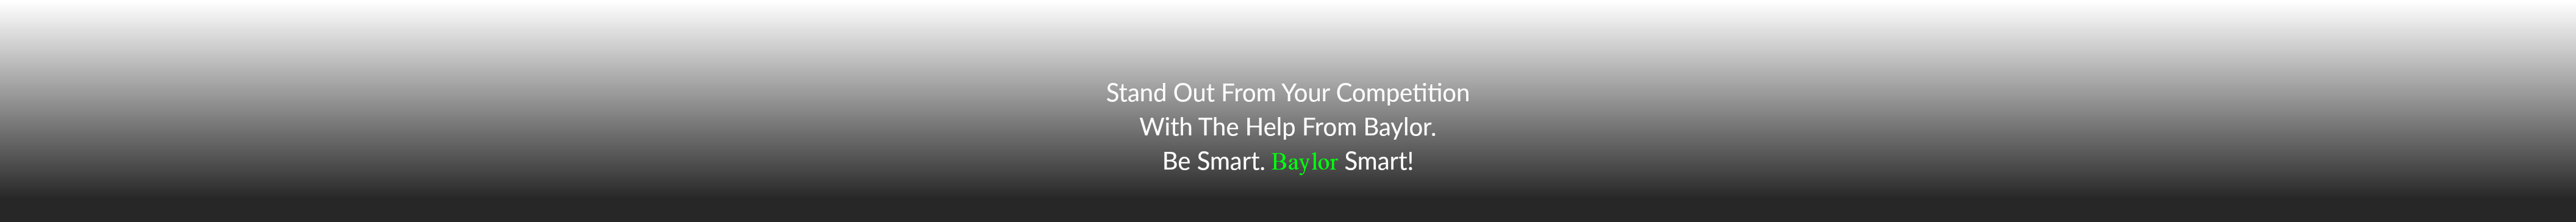 Stand Out From Your Competition With The Help From Baylor. Be Smart. Baylor Smart!